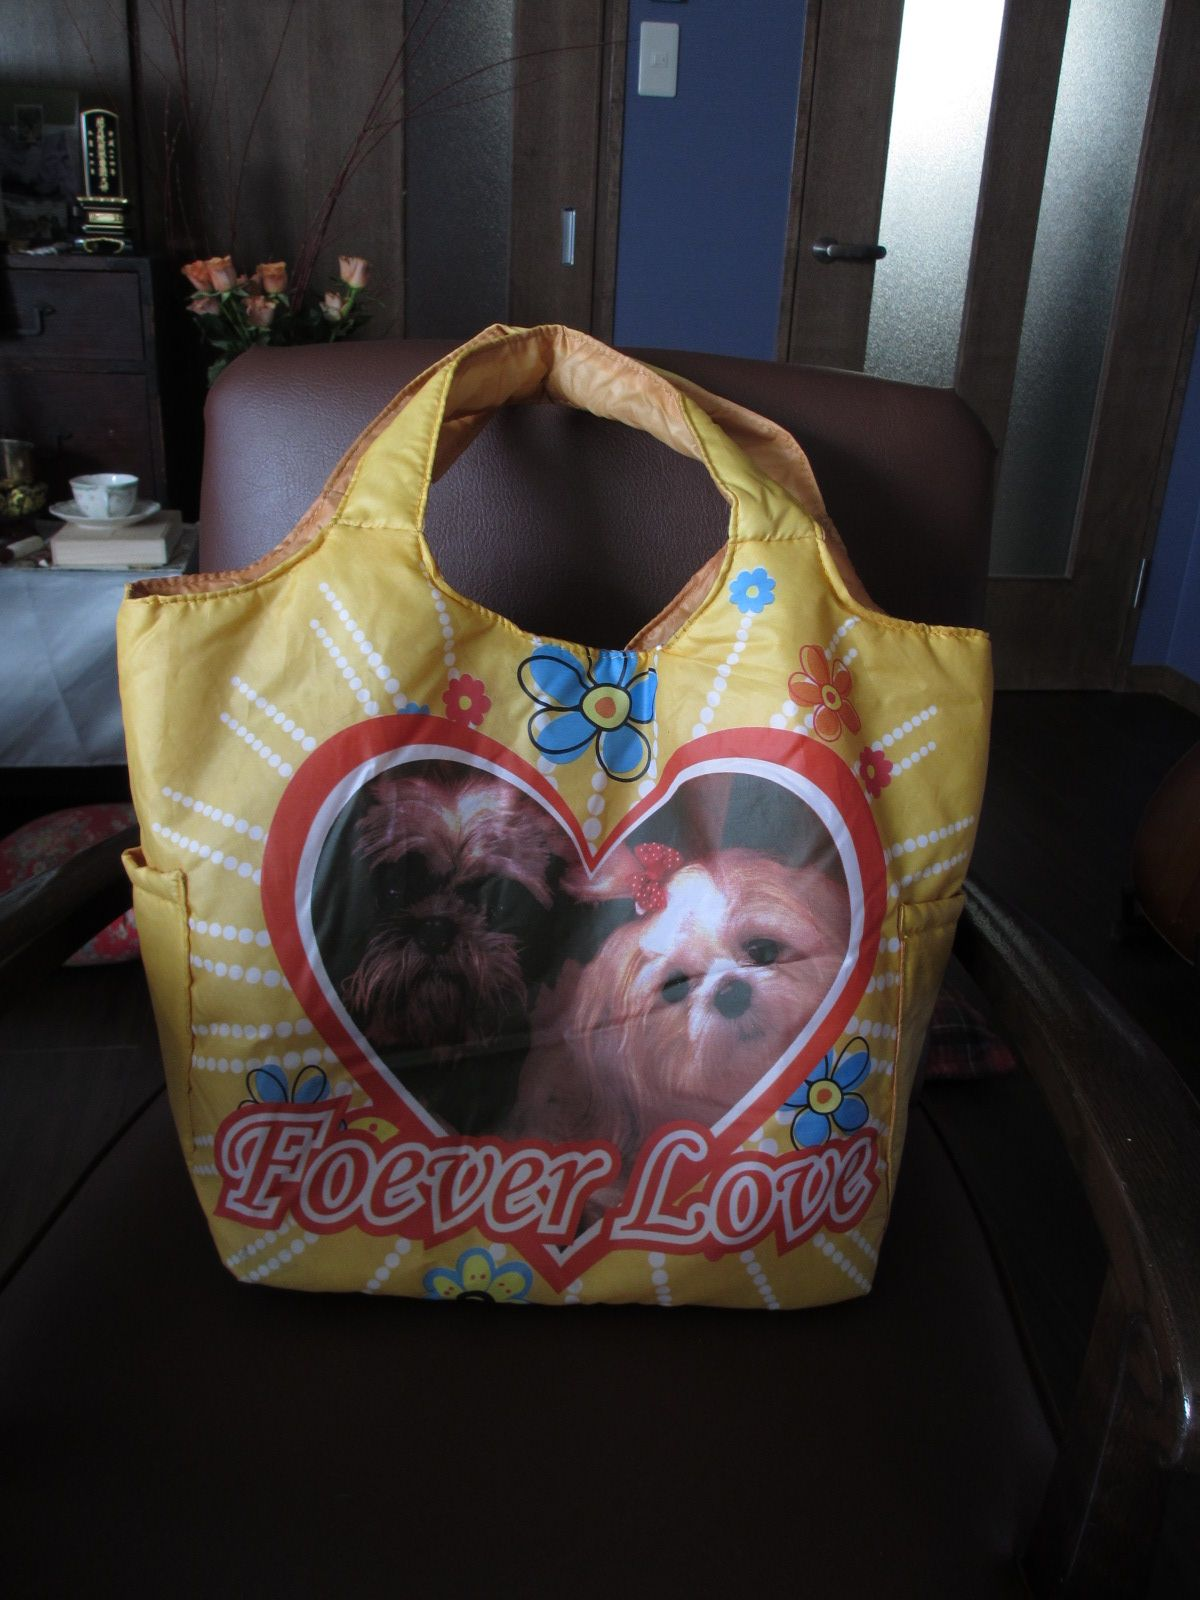 I bought a shopping bag.  The dogs appearing in this photograph resemble my sons.